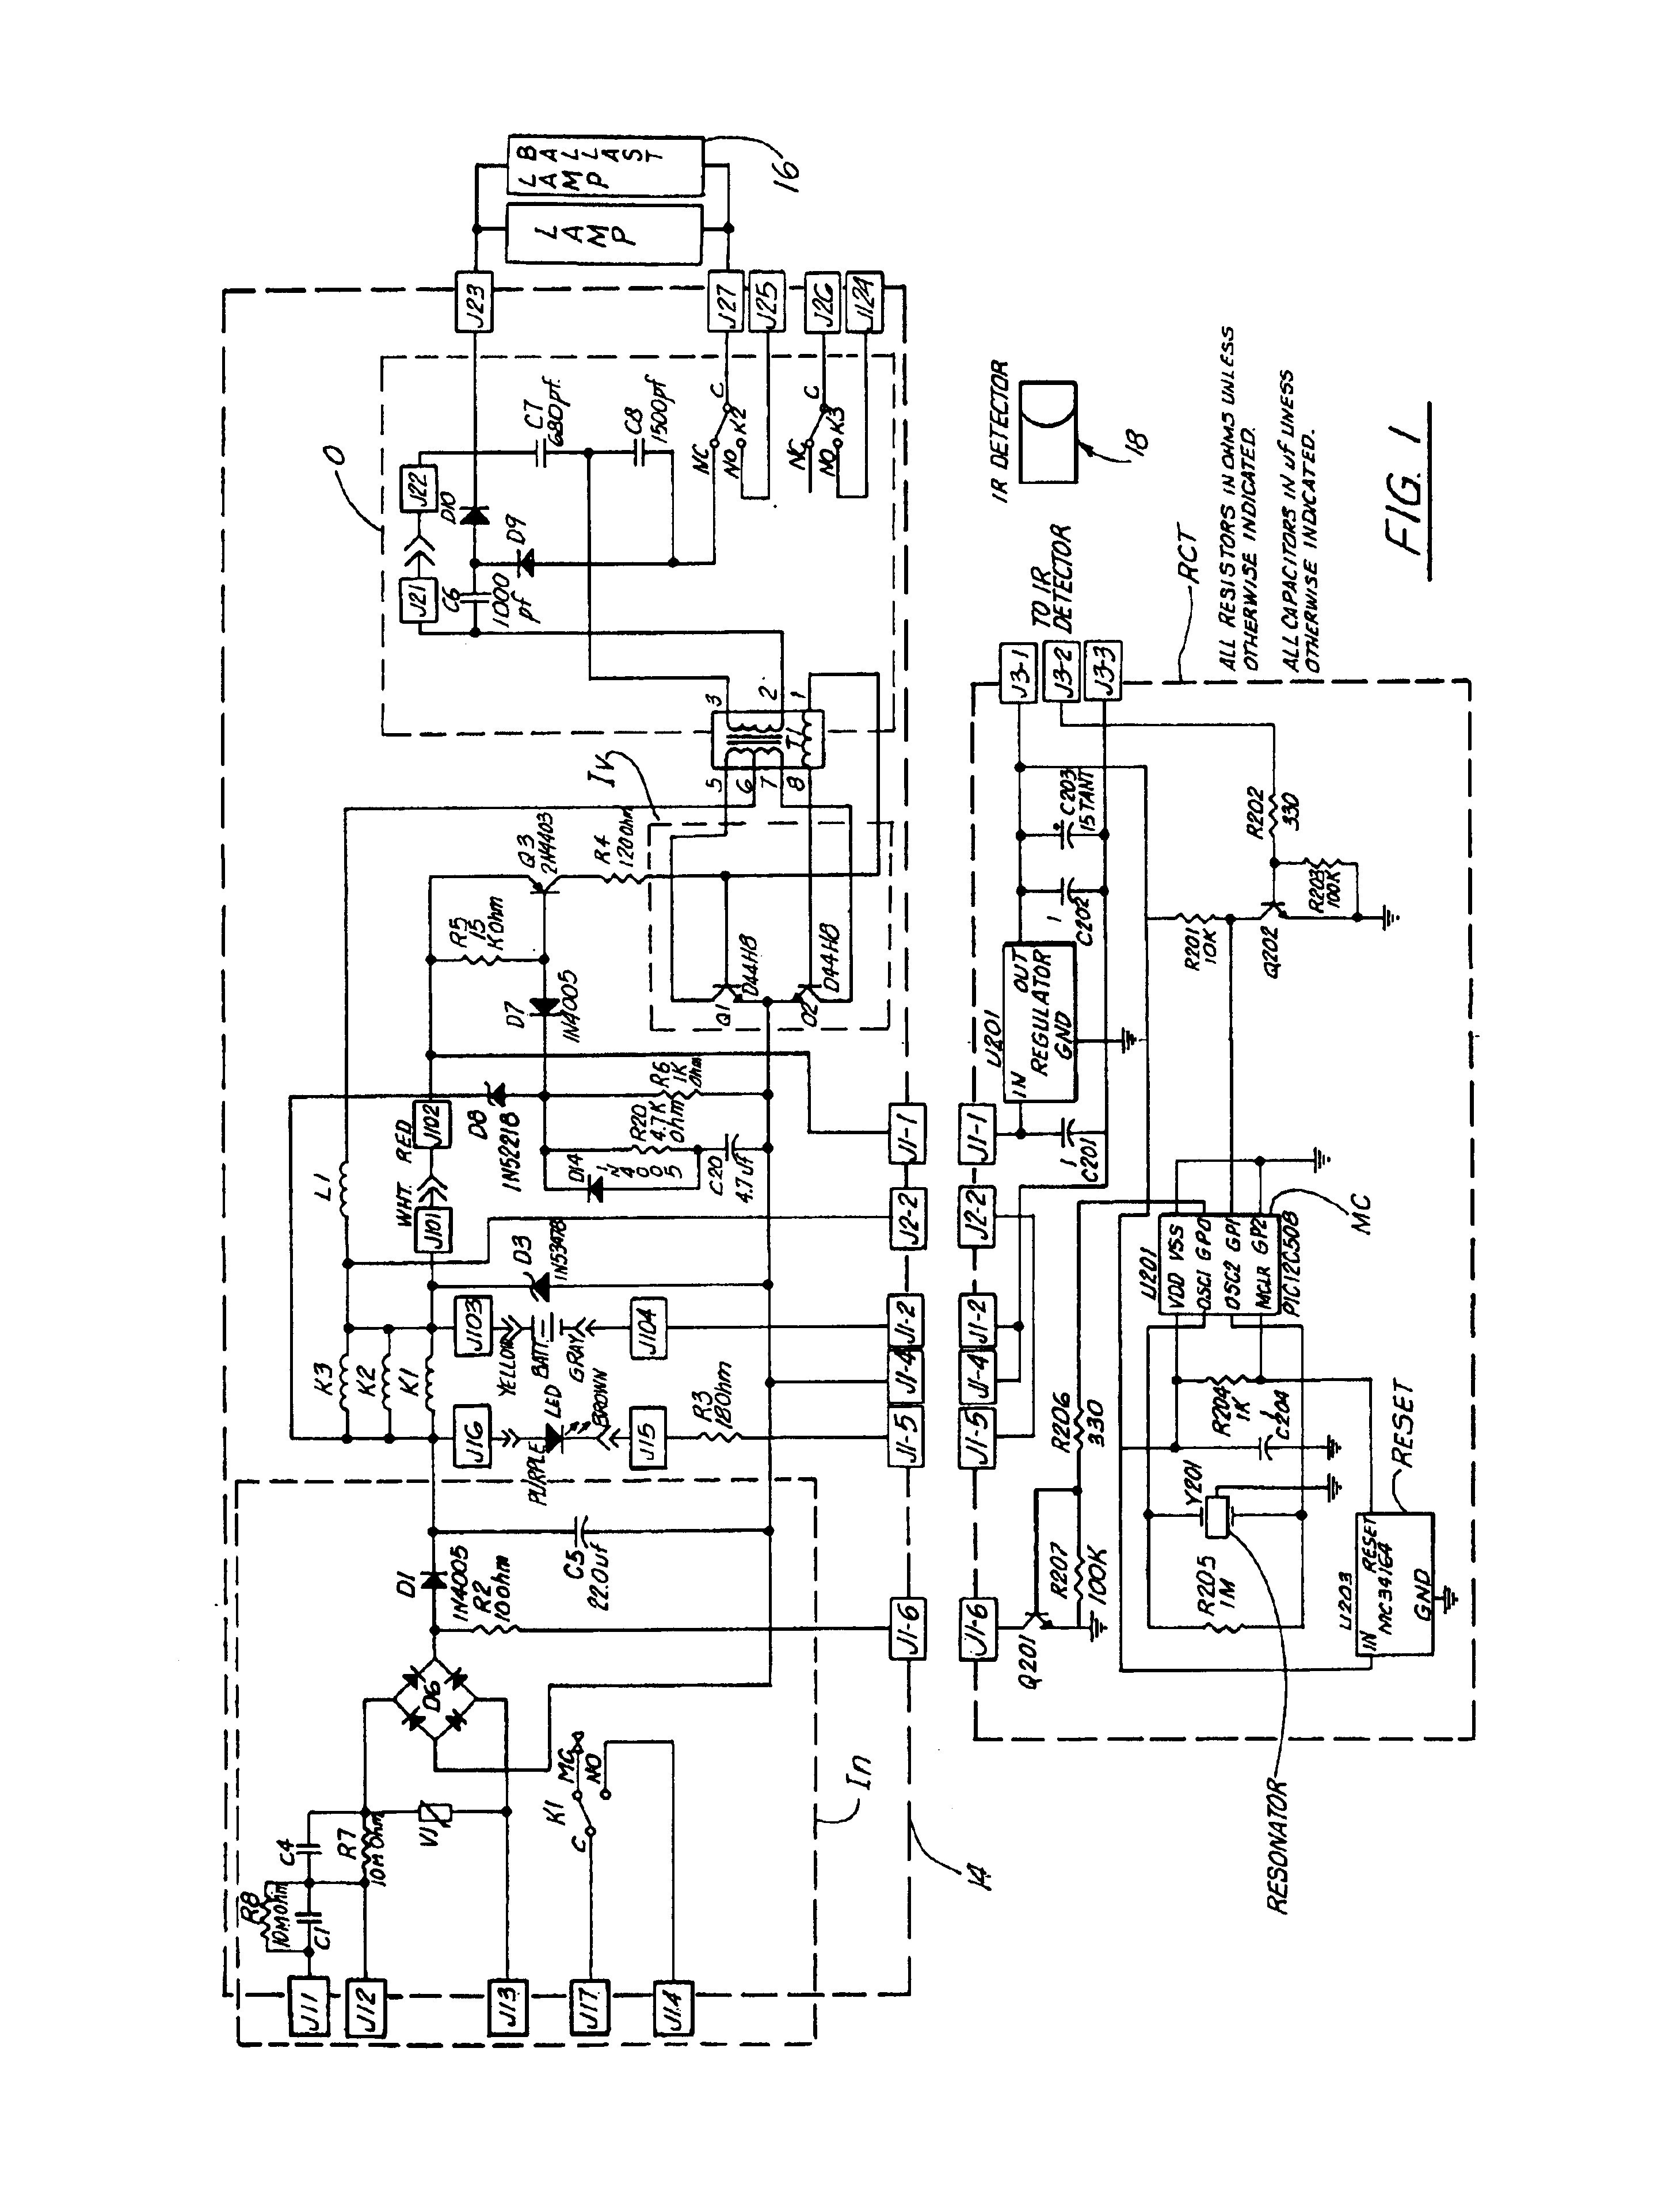 wiring a room layout diagram